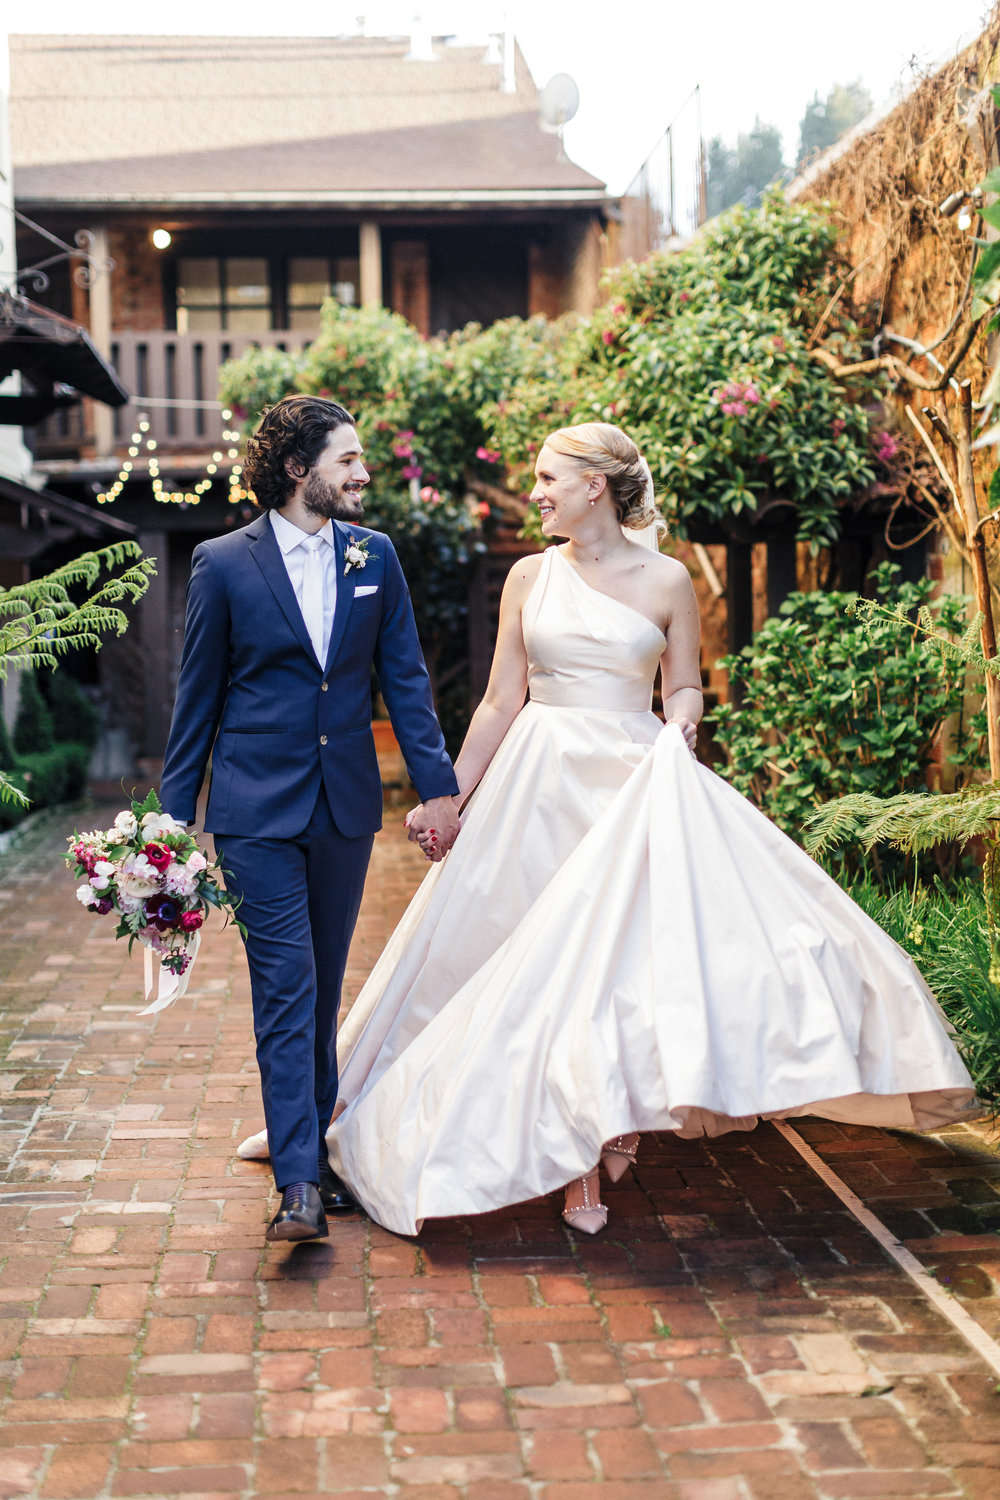 Elegant garden wedding at The Outdoor Art Club in Mill Valley, California with Torrey Fox Photography, Venn Floral, Sage Catering, and Oh Splendid Day.